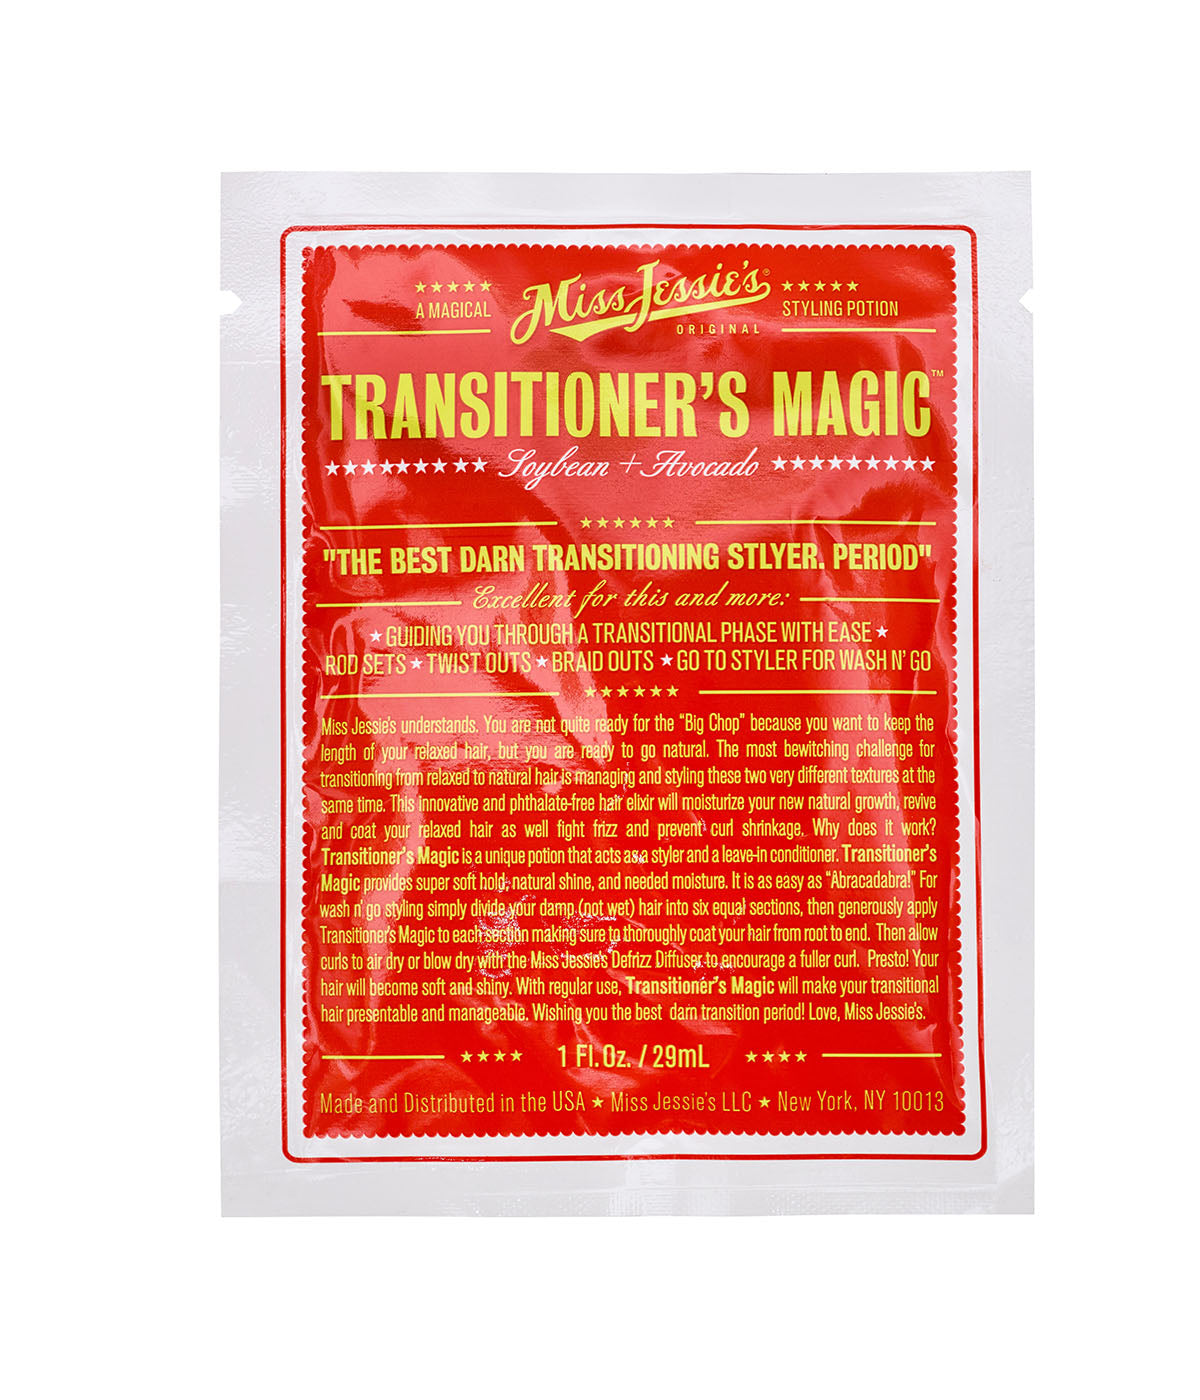 Transitioner's Magic